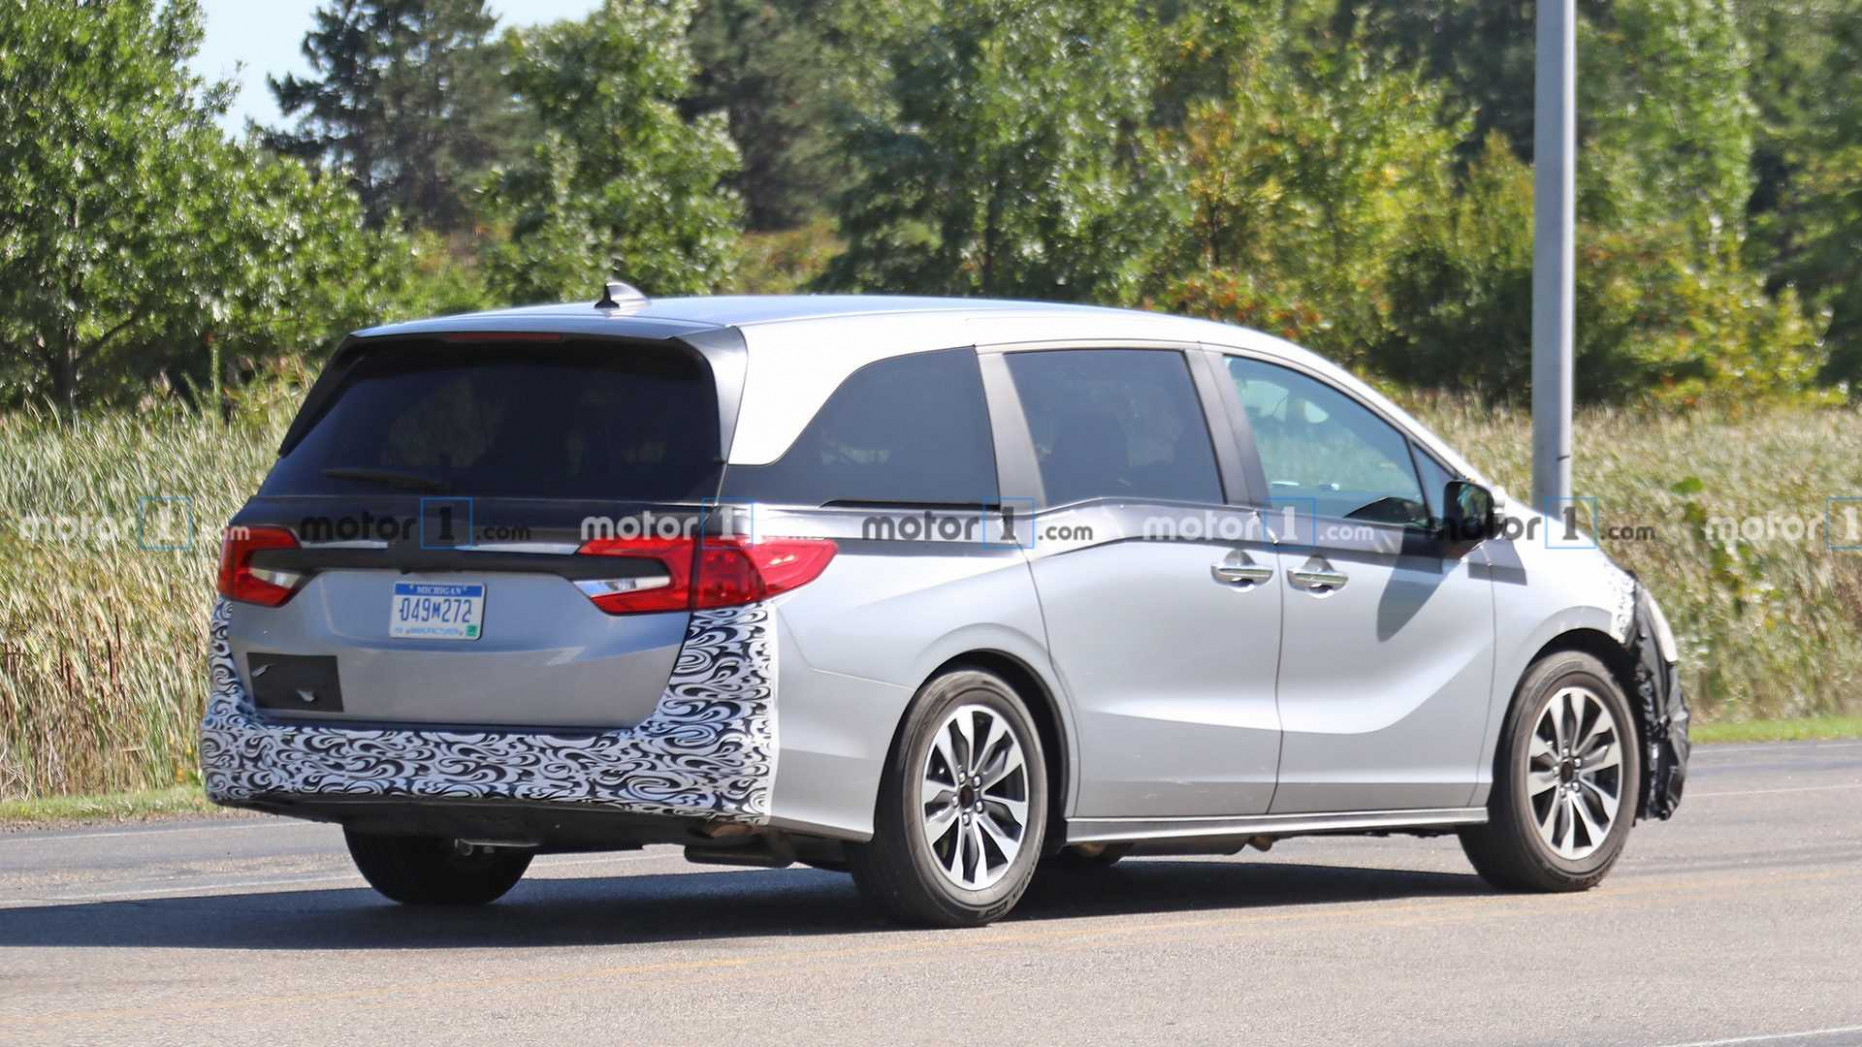 Reviews When Does 2022 Honda Odyssey Come Out